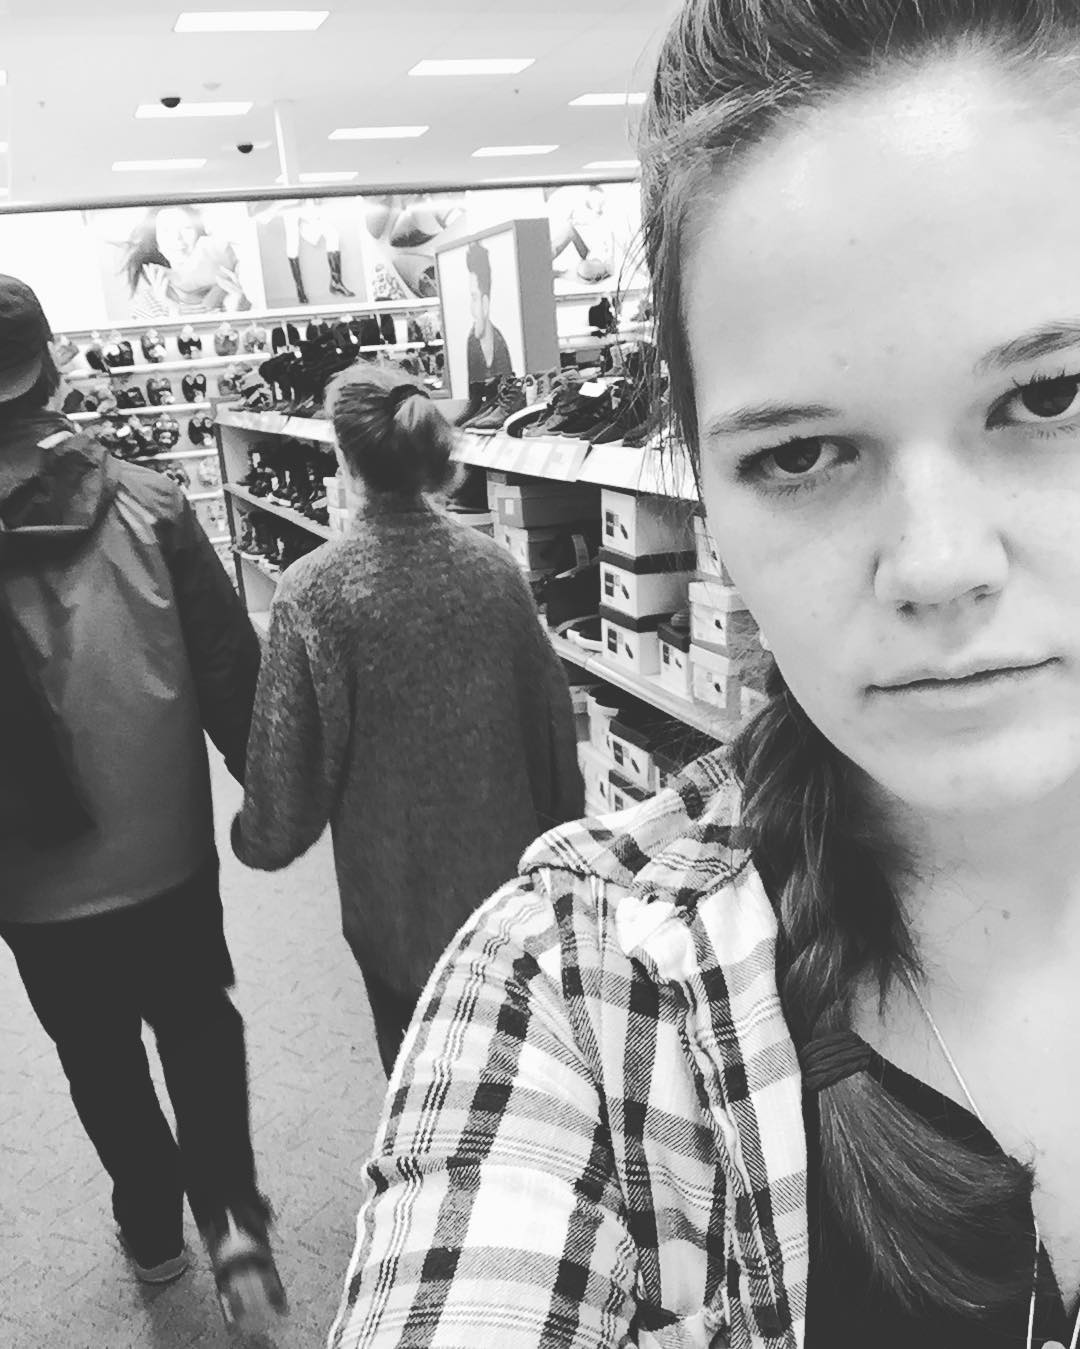 third wheel en el super mercado